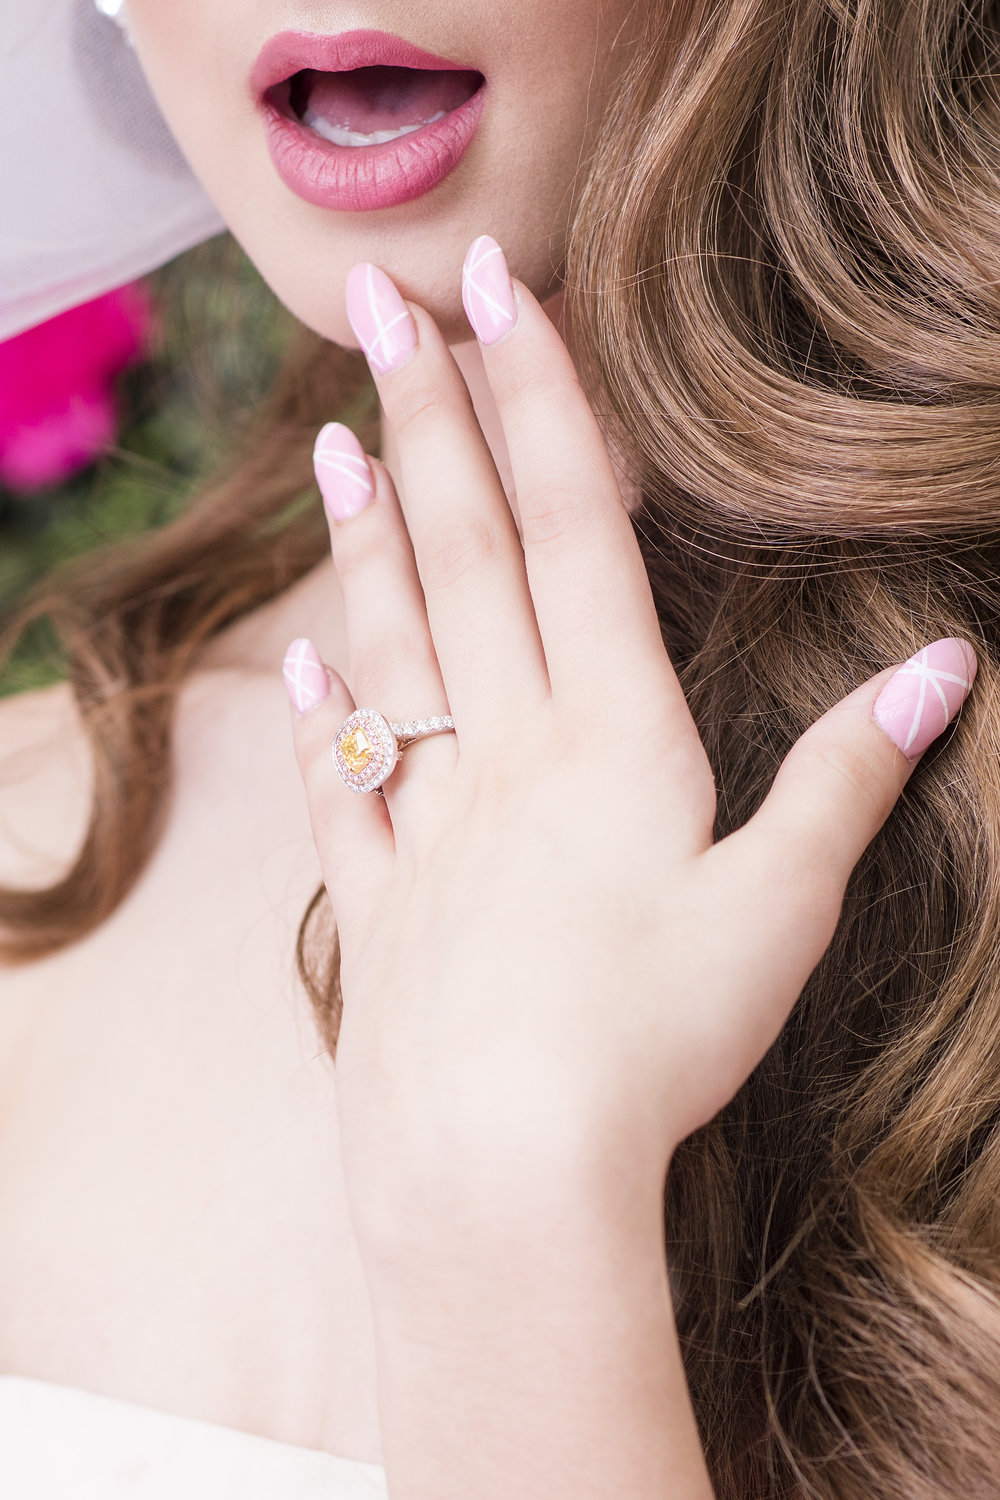 Bridal ring & nail art - Dior Darling (Wedluxe)